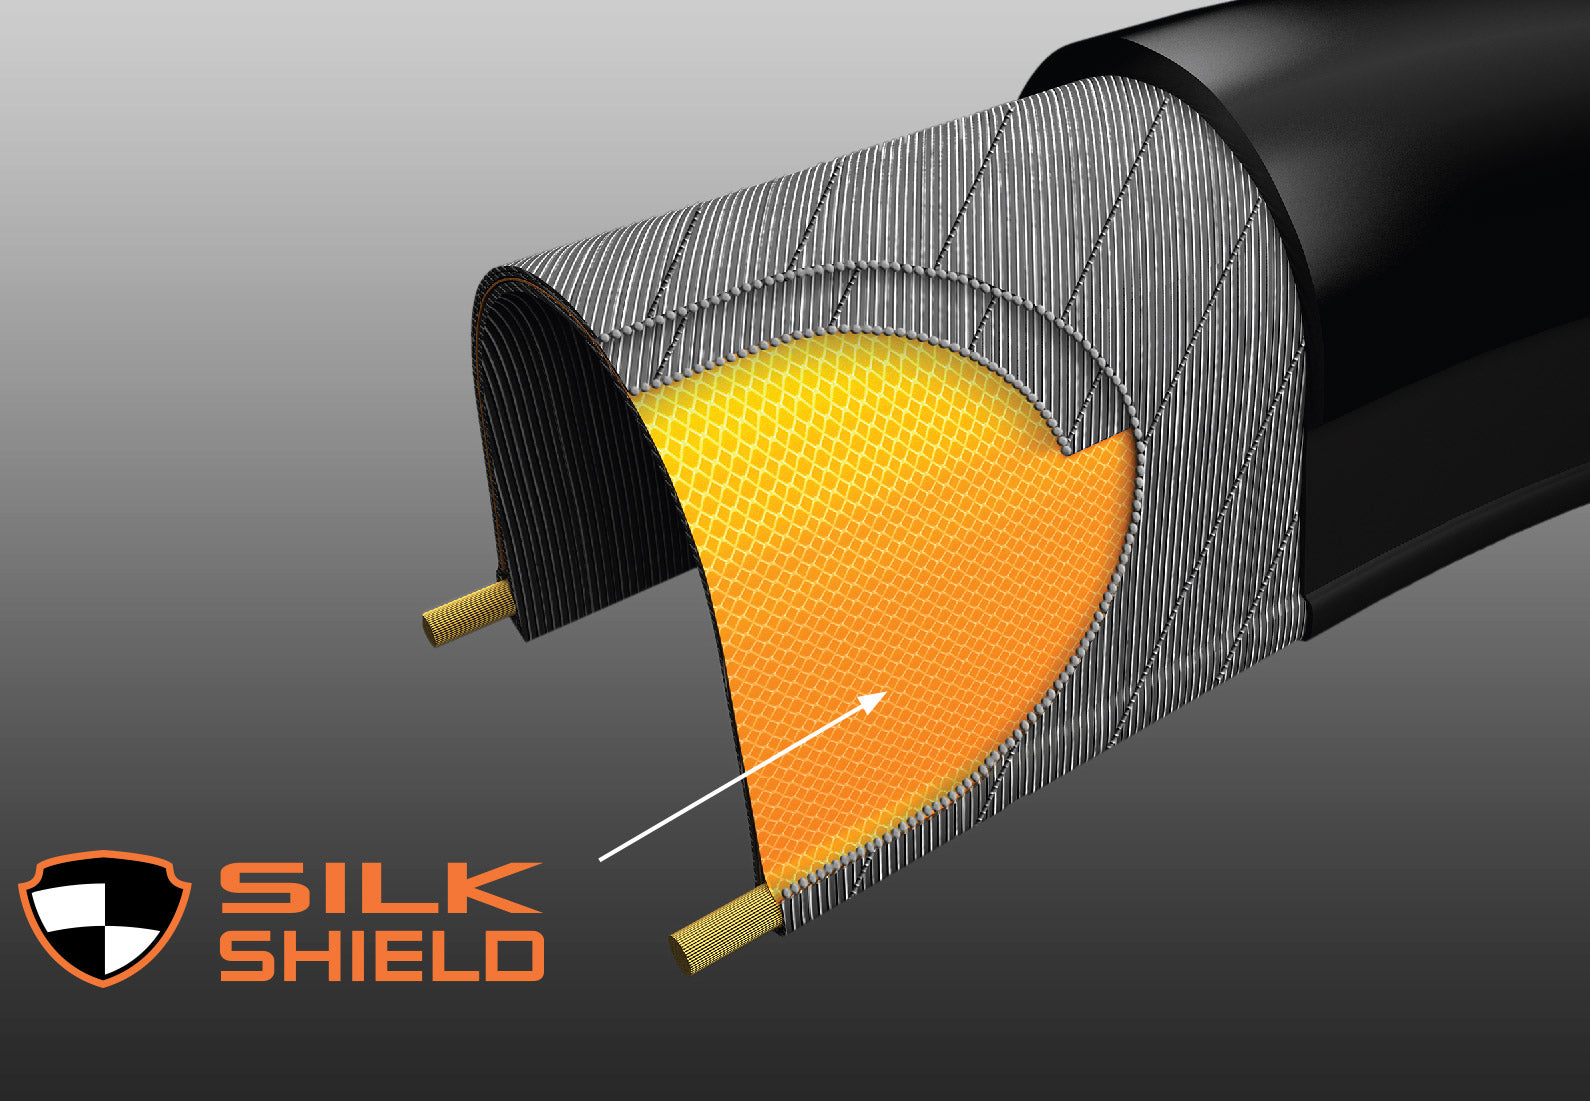 Maxxis Silkshield gravel bike tire puncture protection